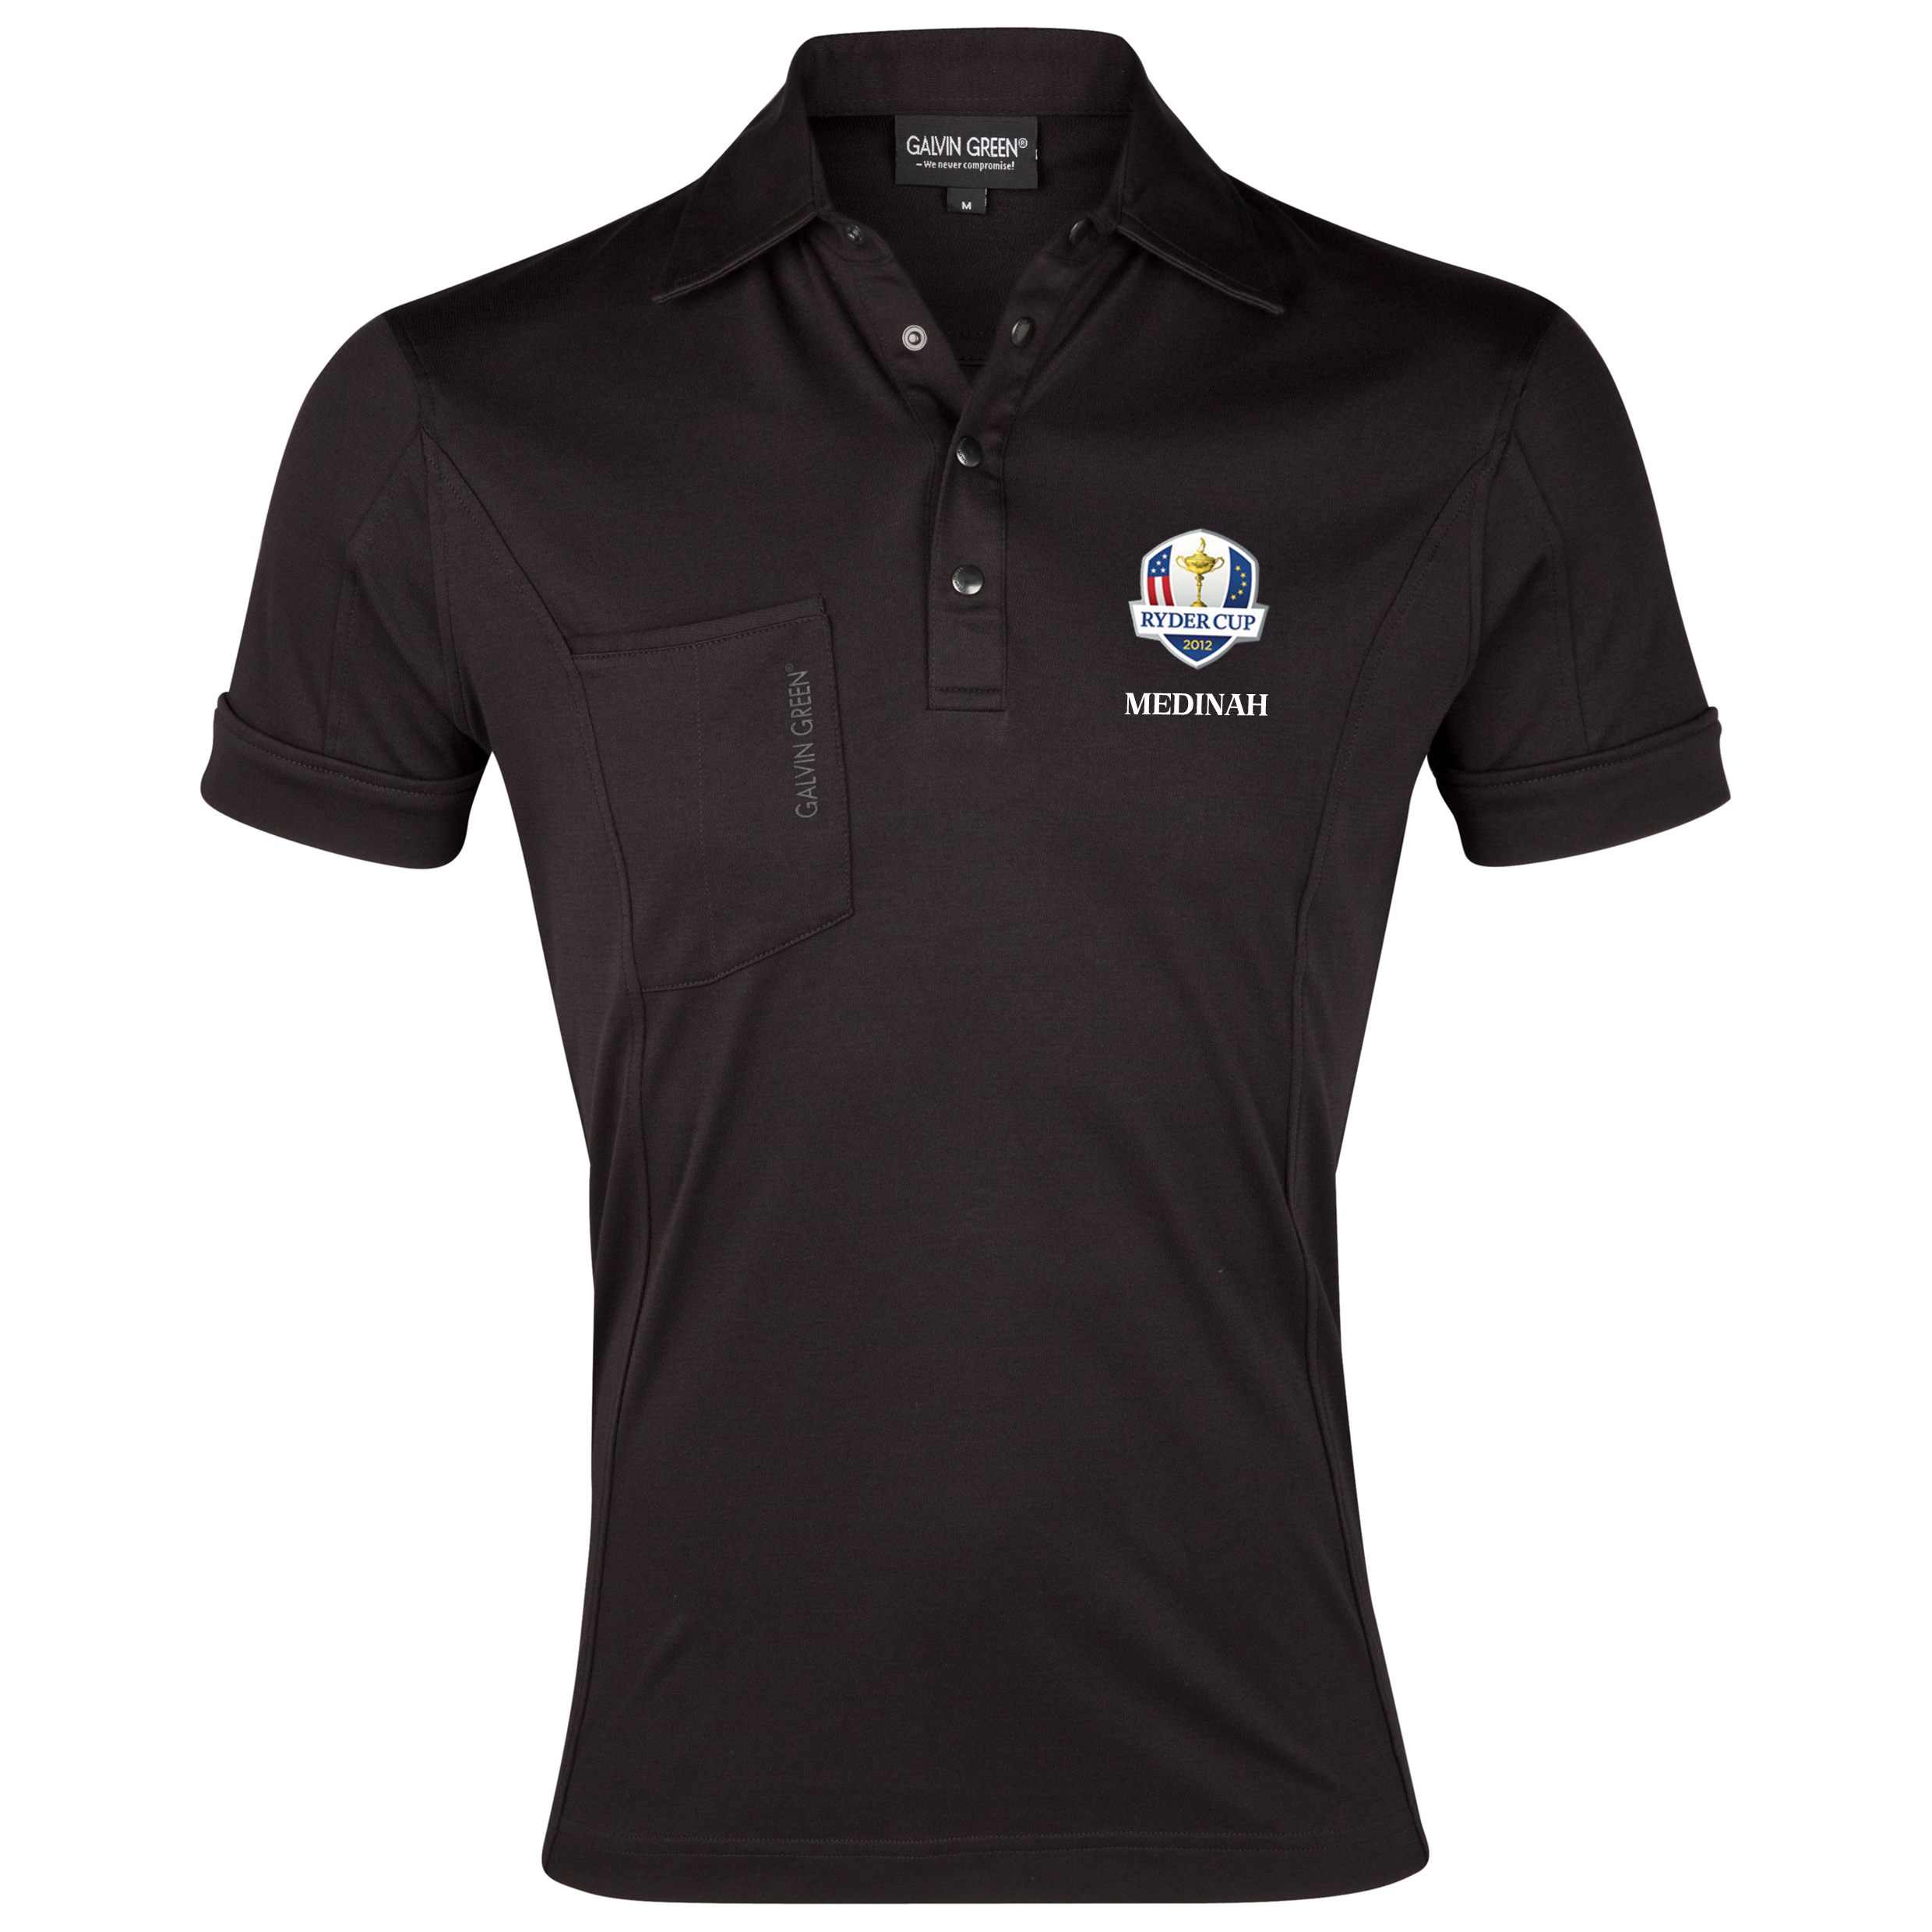 The 2012 Ryder Cup Galvin Green Golf Polo - Black